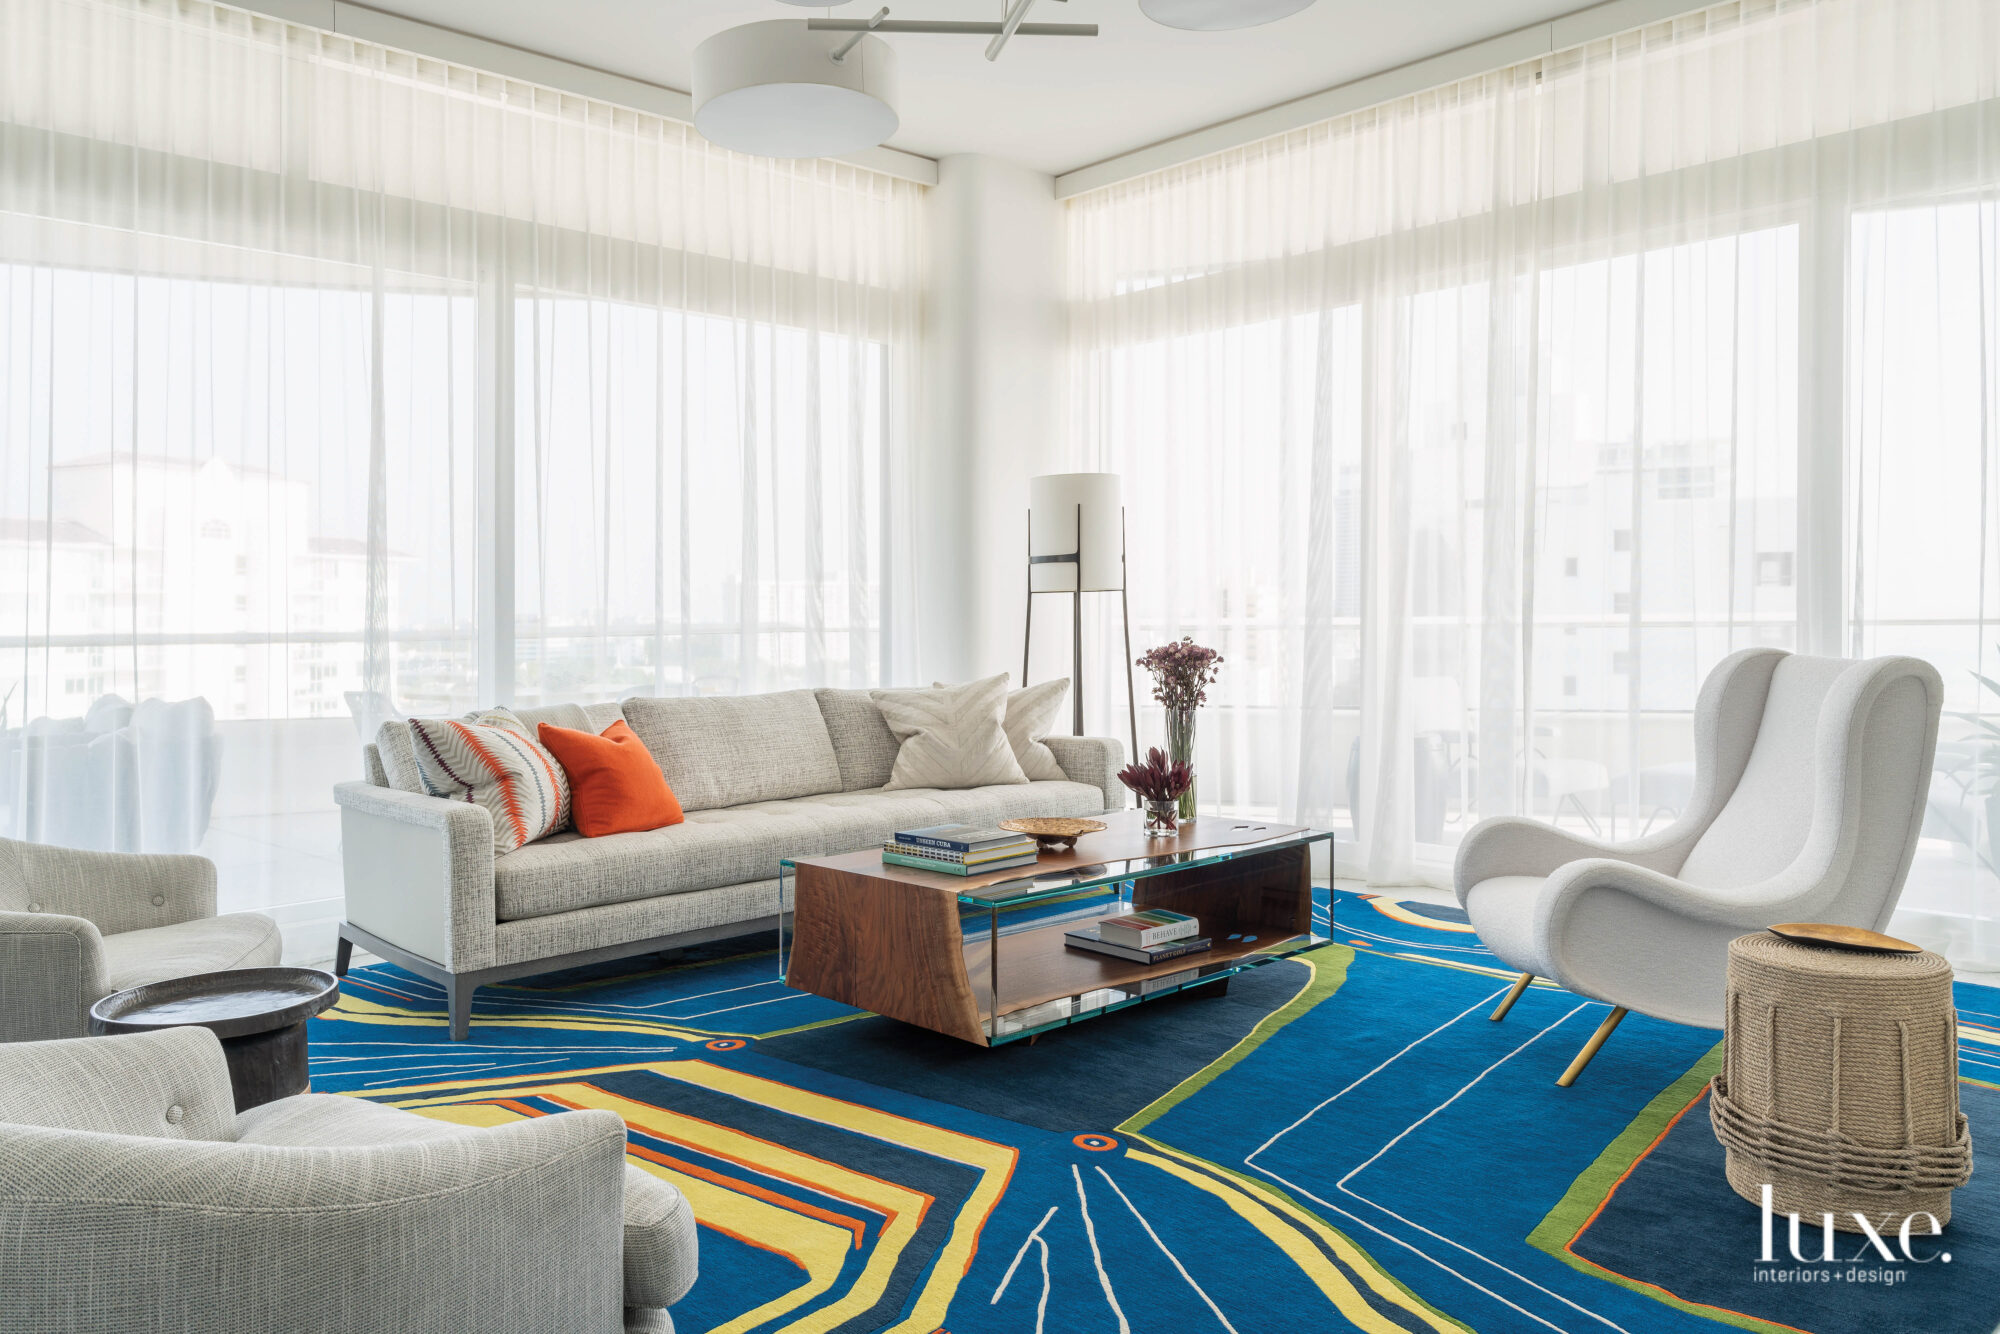 Living room with bold blue and yellow rug